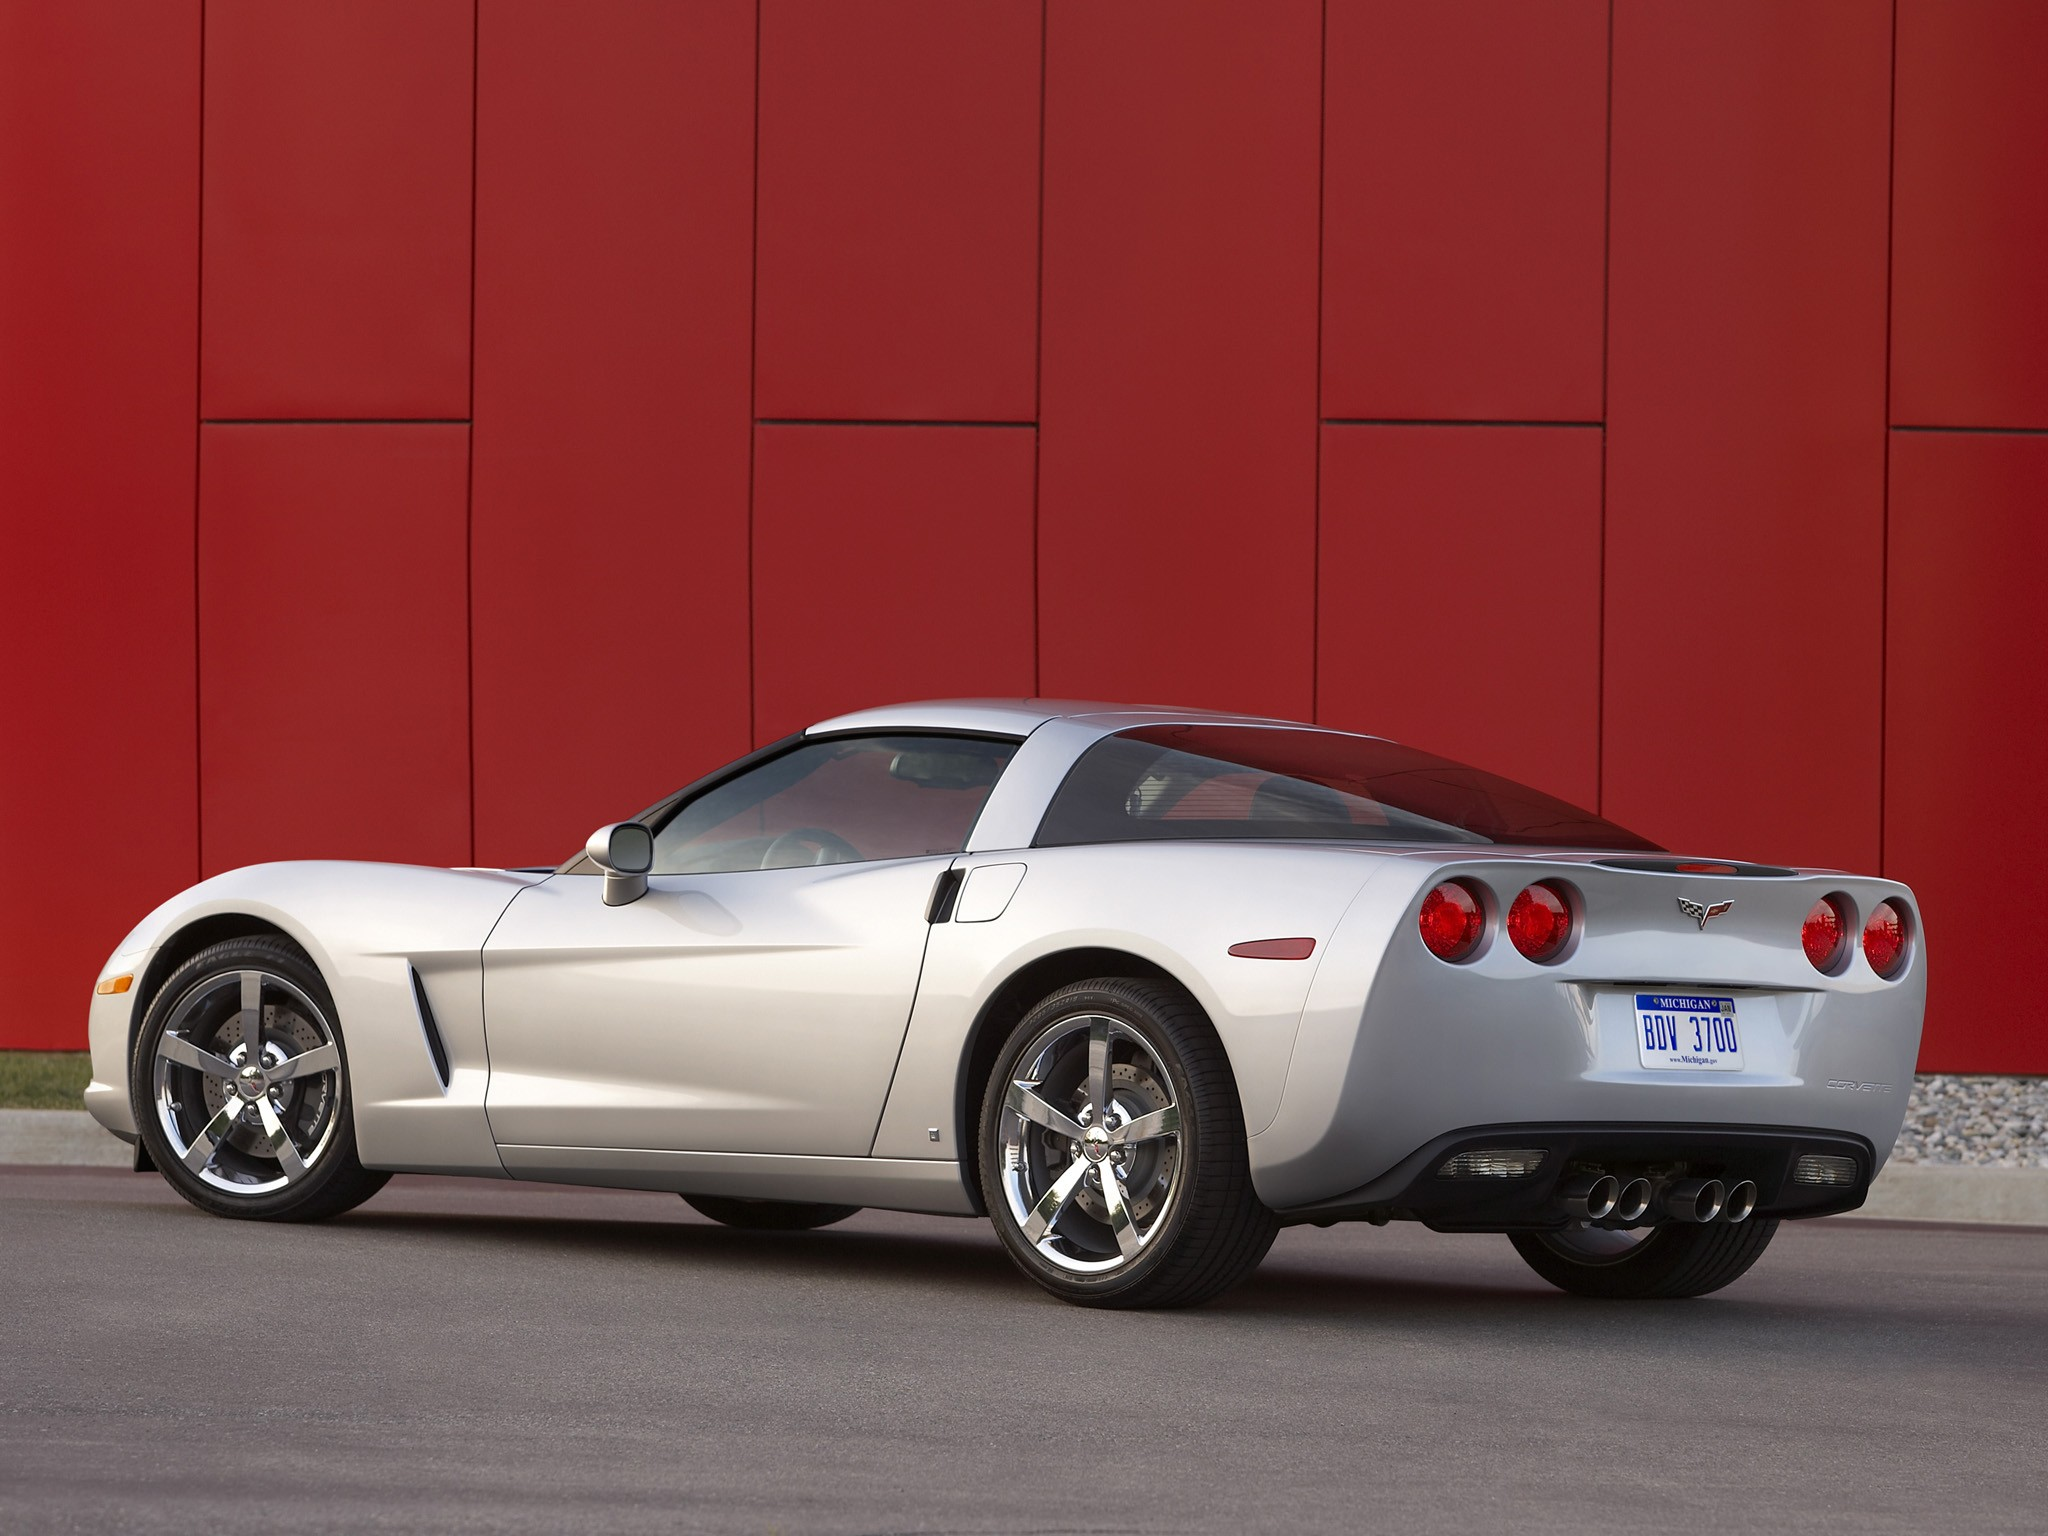 chevrolet corvette coupe specs 2008 2009 2010 2011. Black Bedroom Furniture Sets. Home Design Ideas